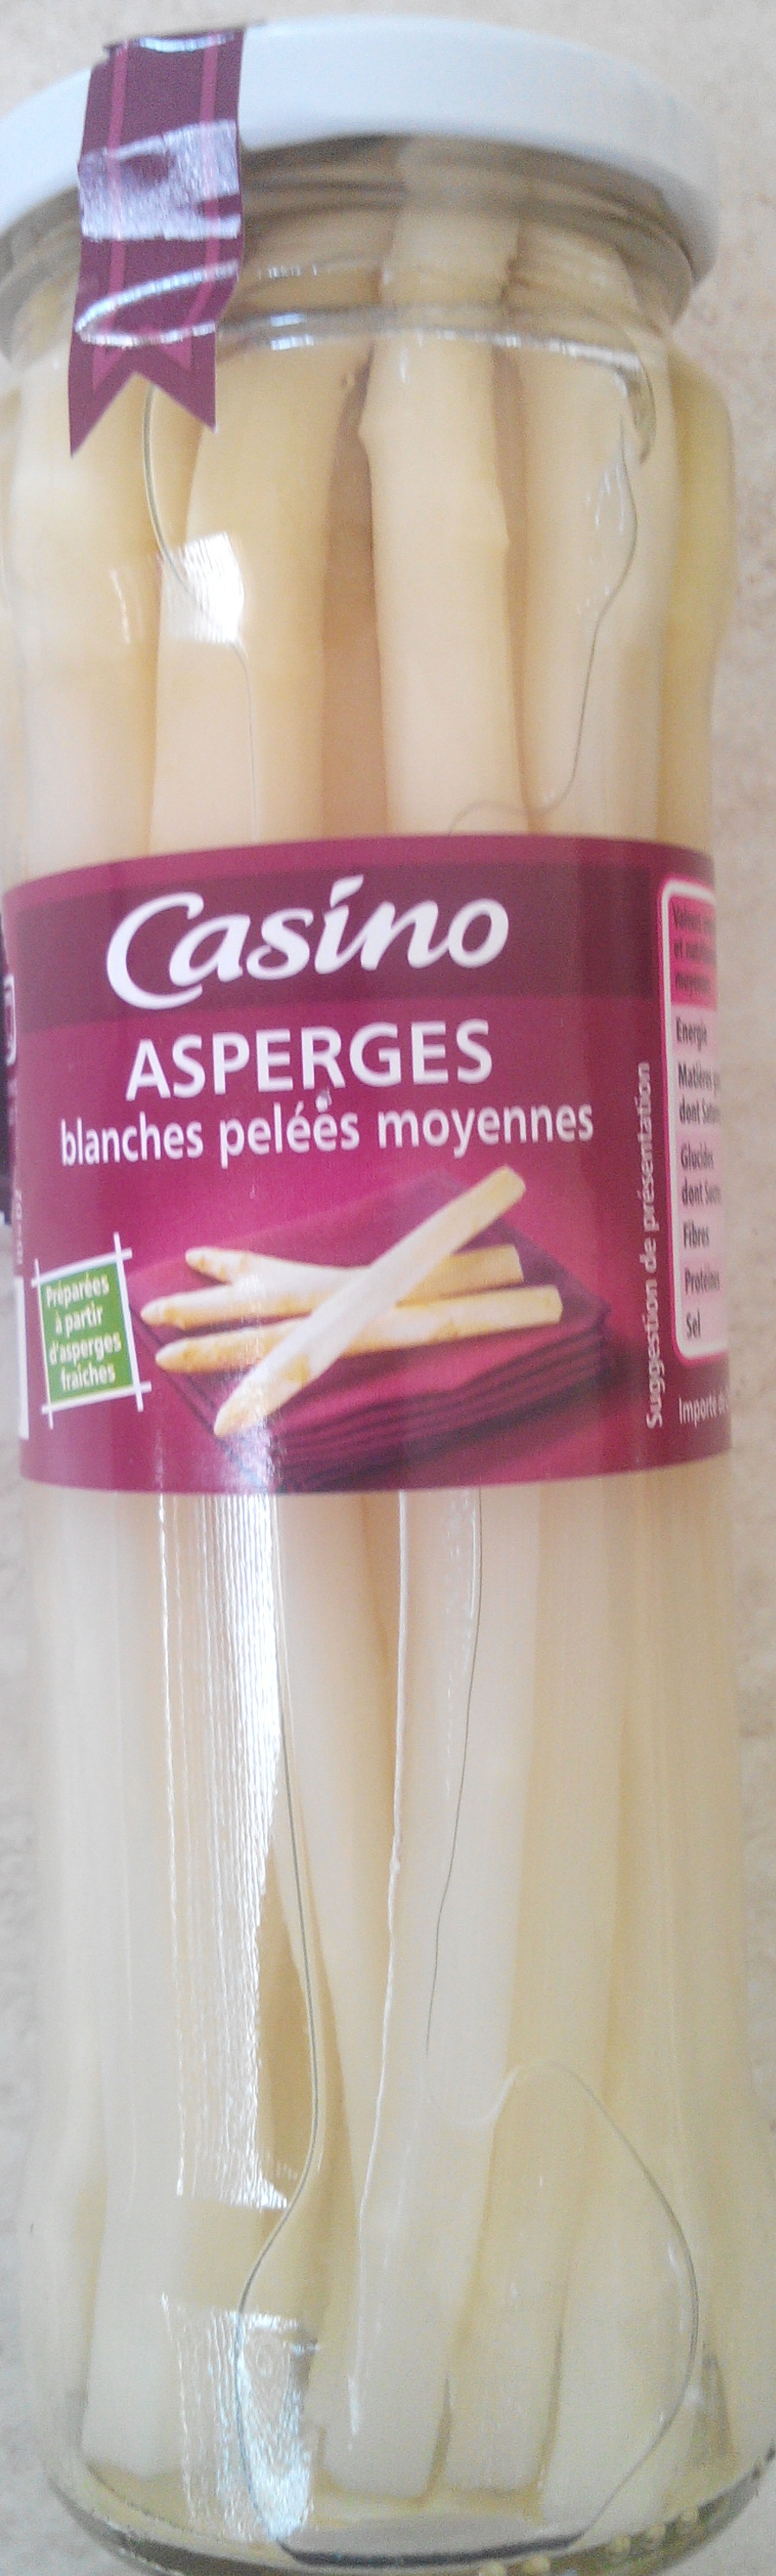 Asperges blanches Pelées Moyennes - Product - fr